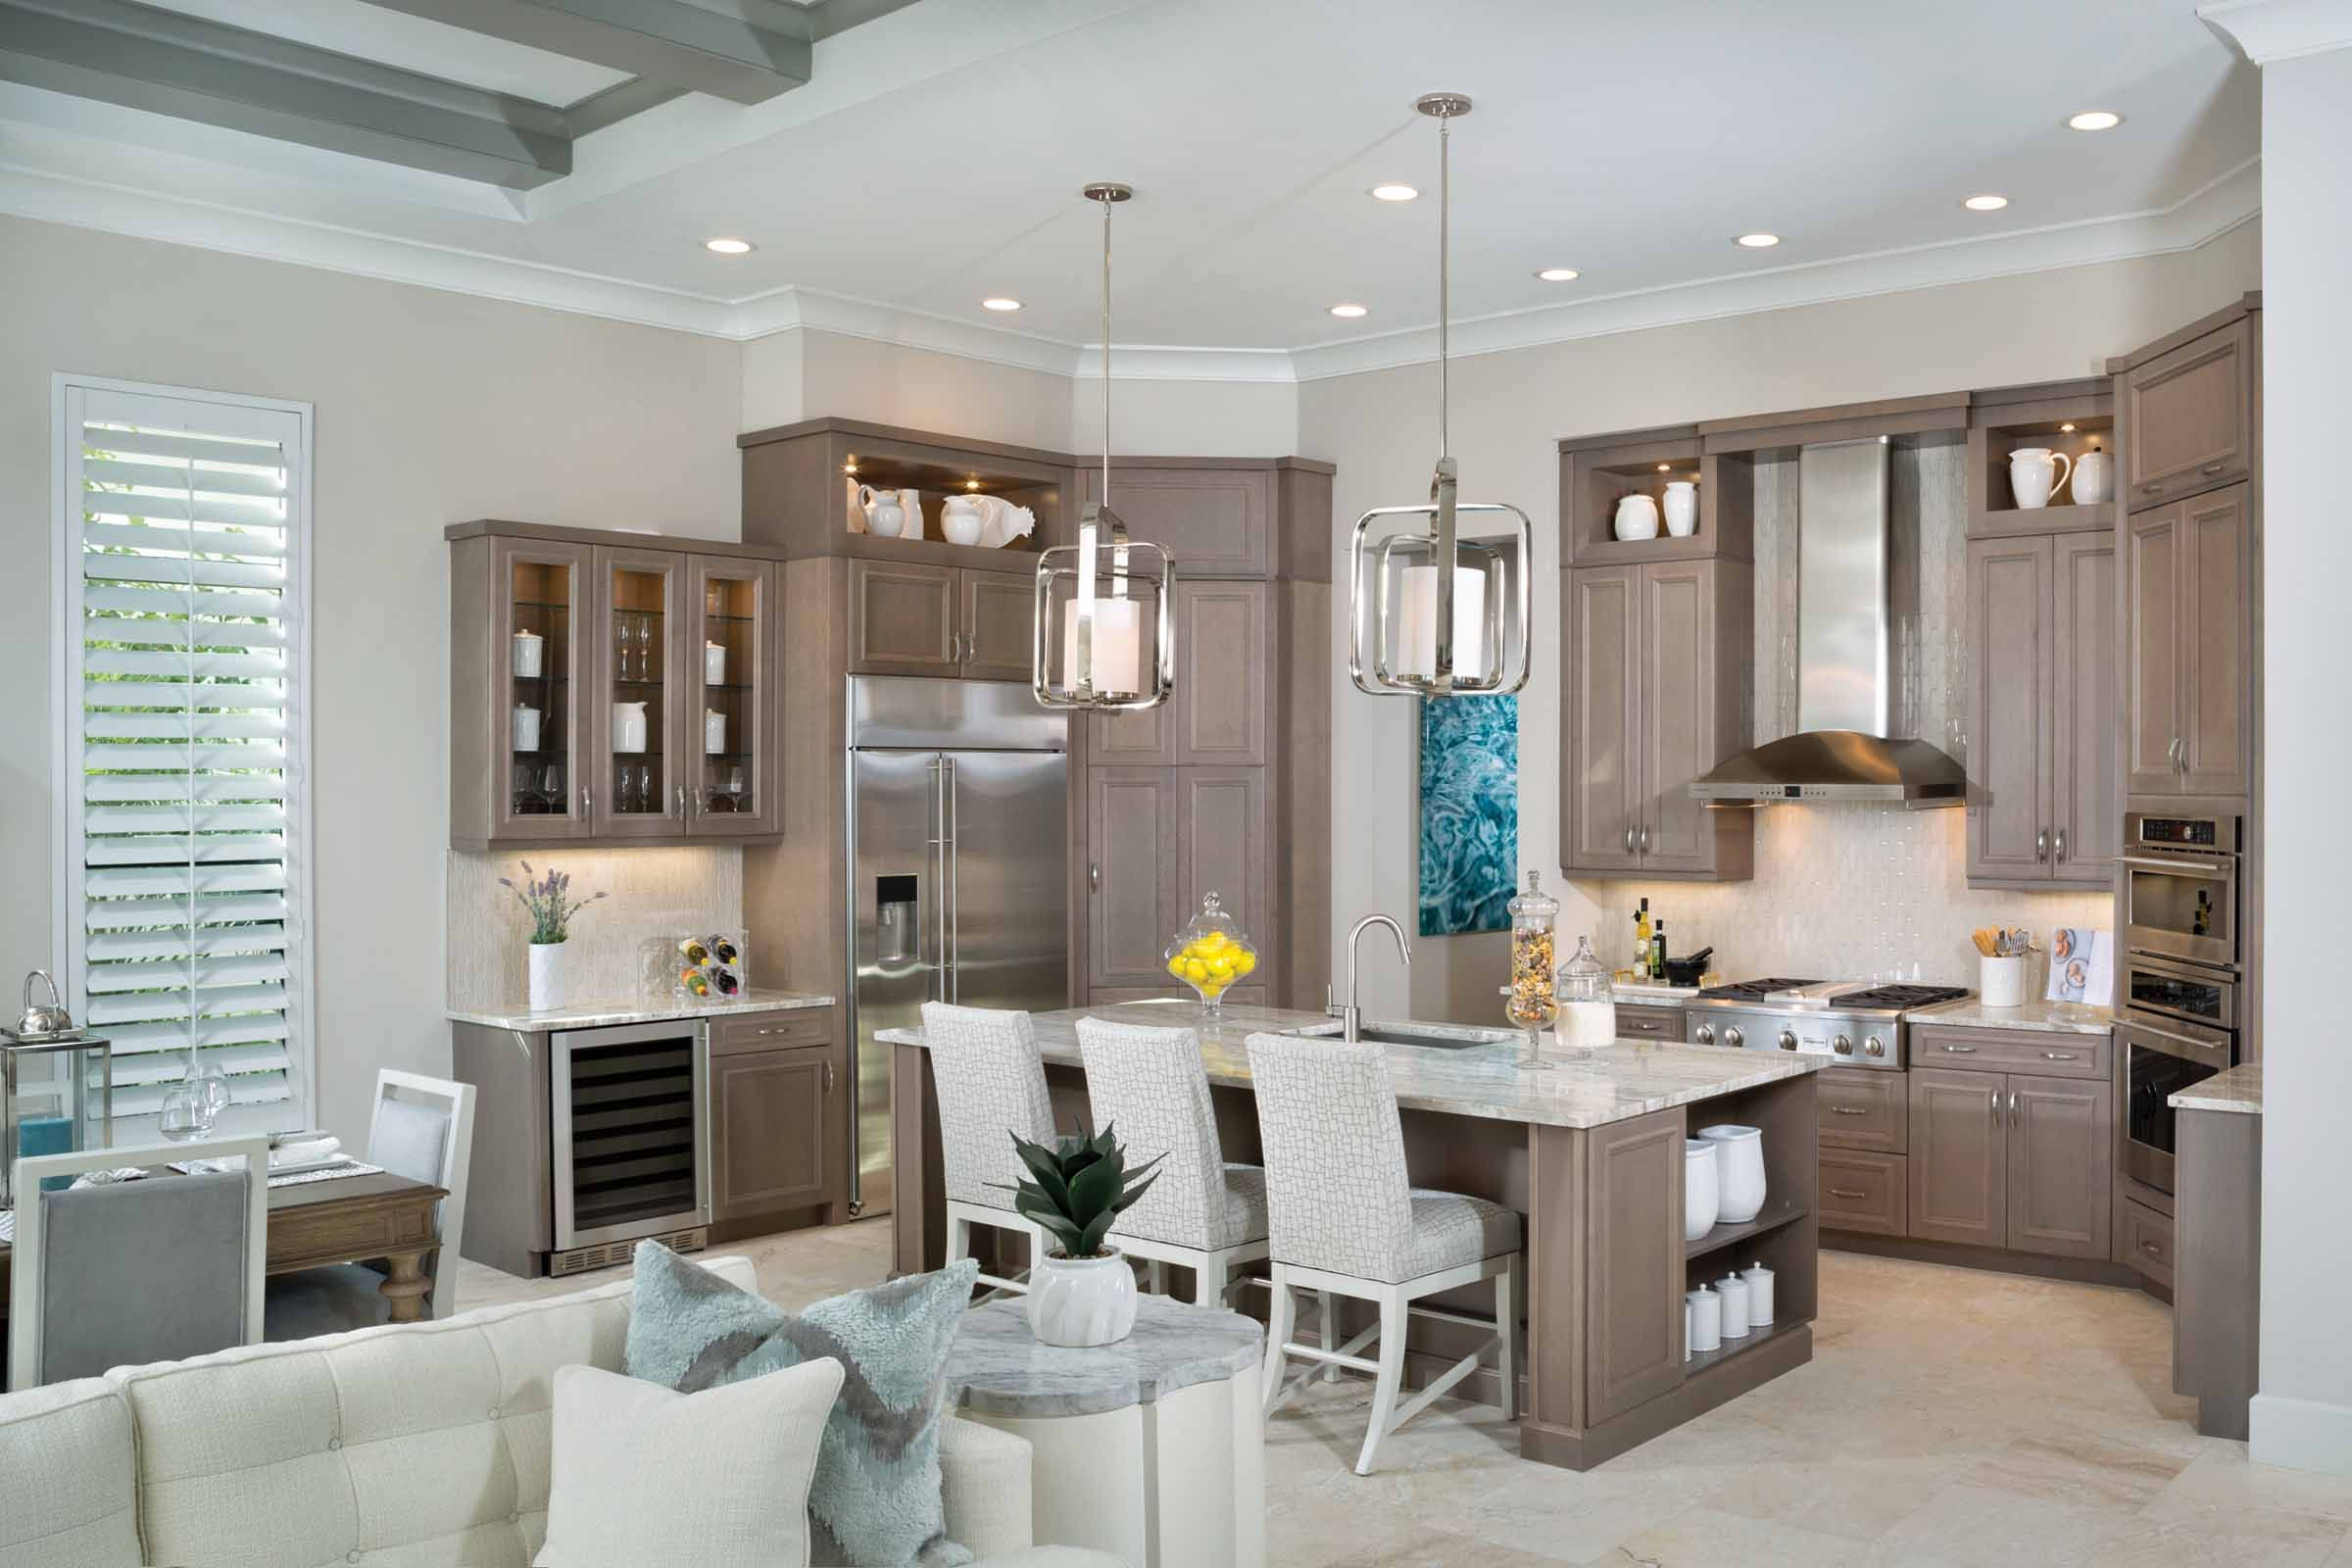 with arthur rutenberg homes your kitchen cabinets will be professionally designed with features on kitchen cabinets upper id=46368